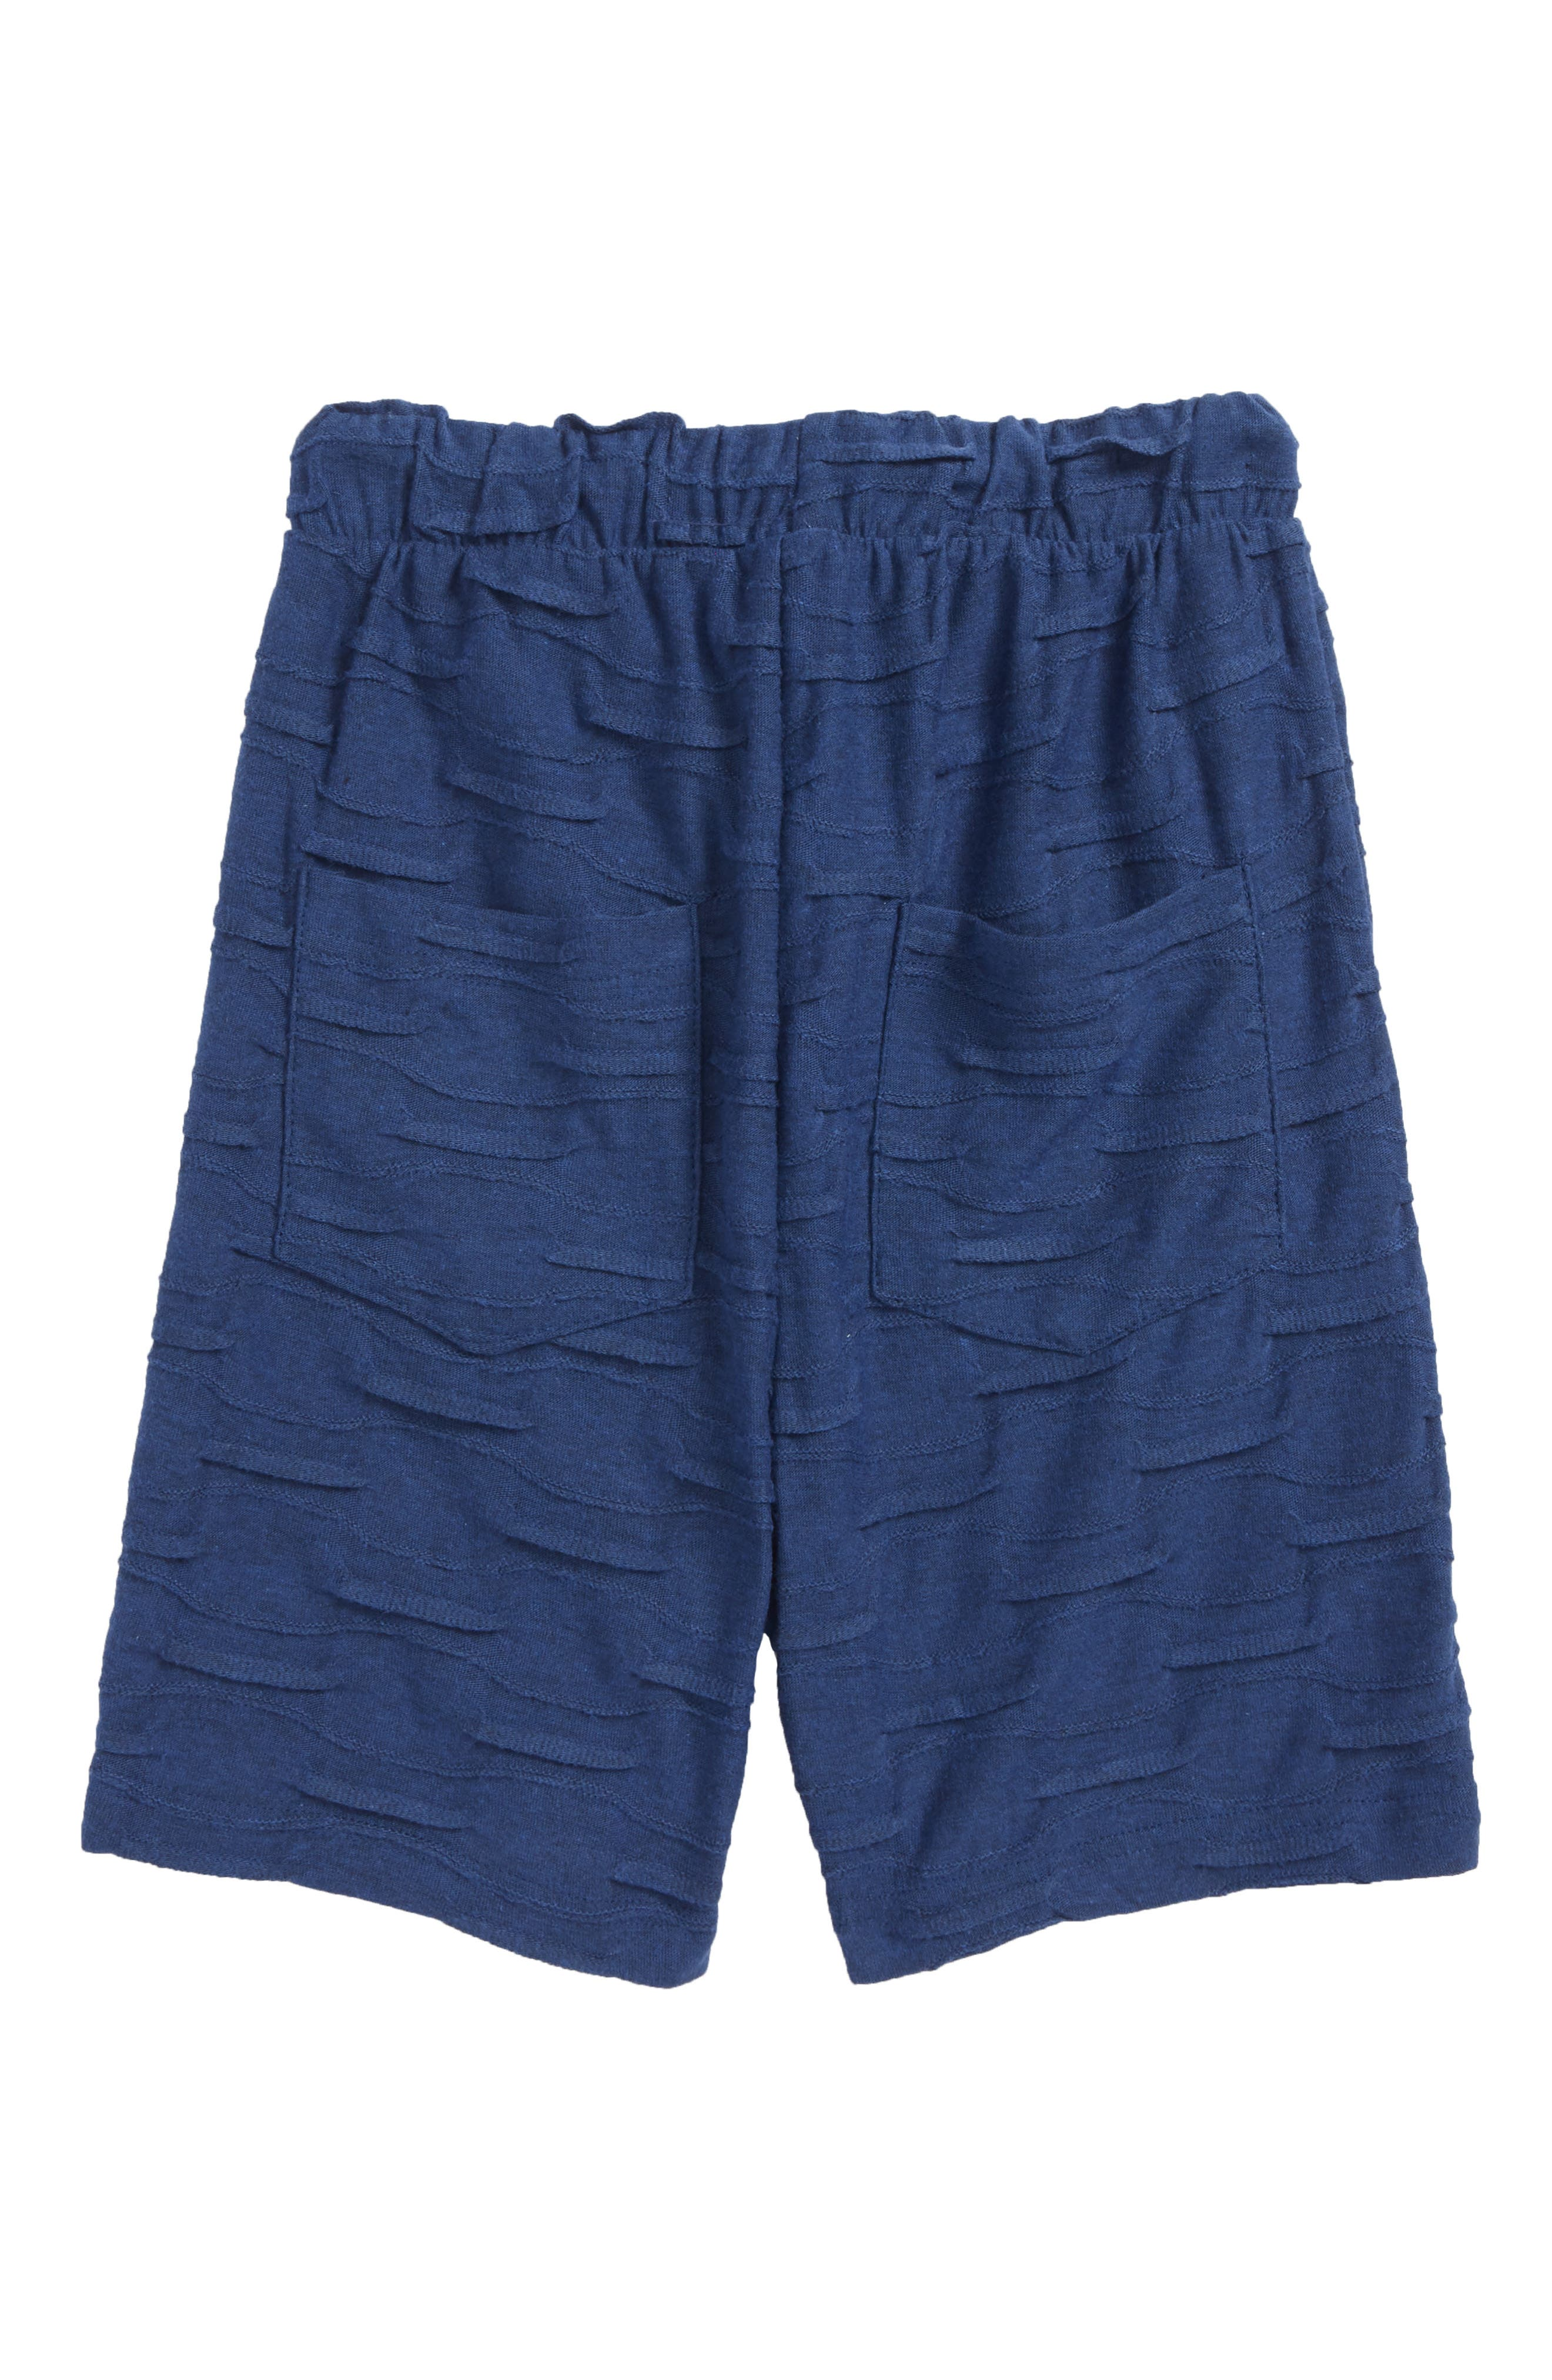 Cambria Shorts,                             Alternate thumbnail 2, color,                             400